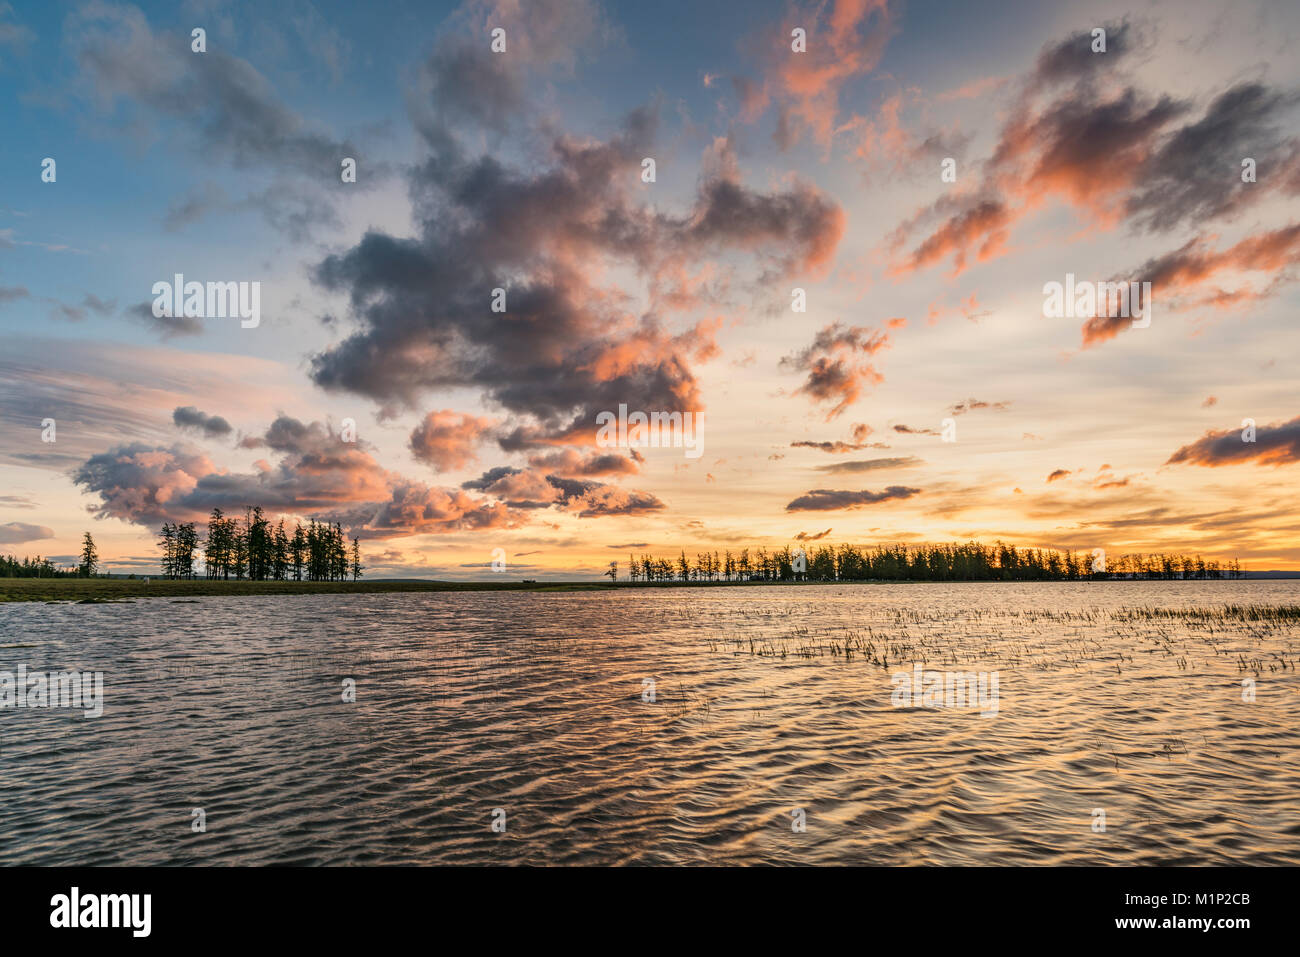 Fir trees and clouds reflecting on the suface of Hovsgol Lake at sunset, Hovsgol province, Mongolia, Central Asia, - Stock Image